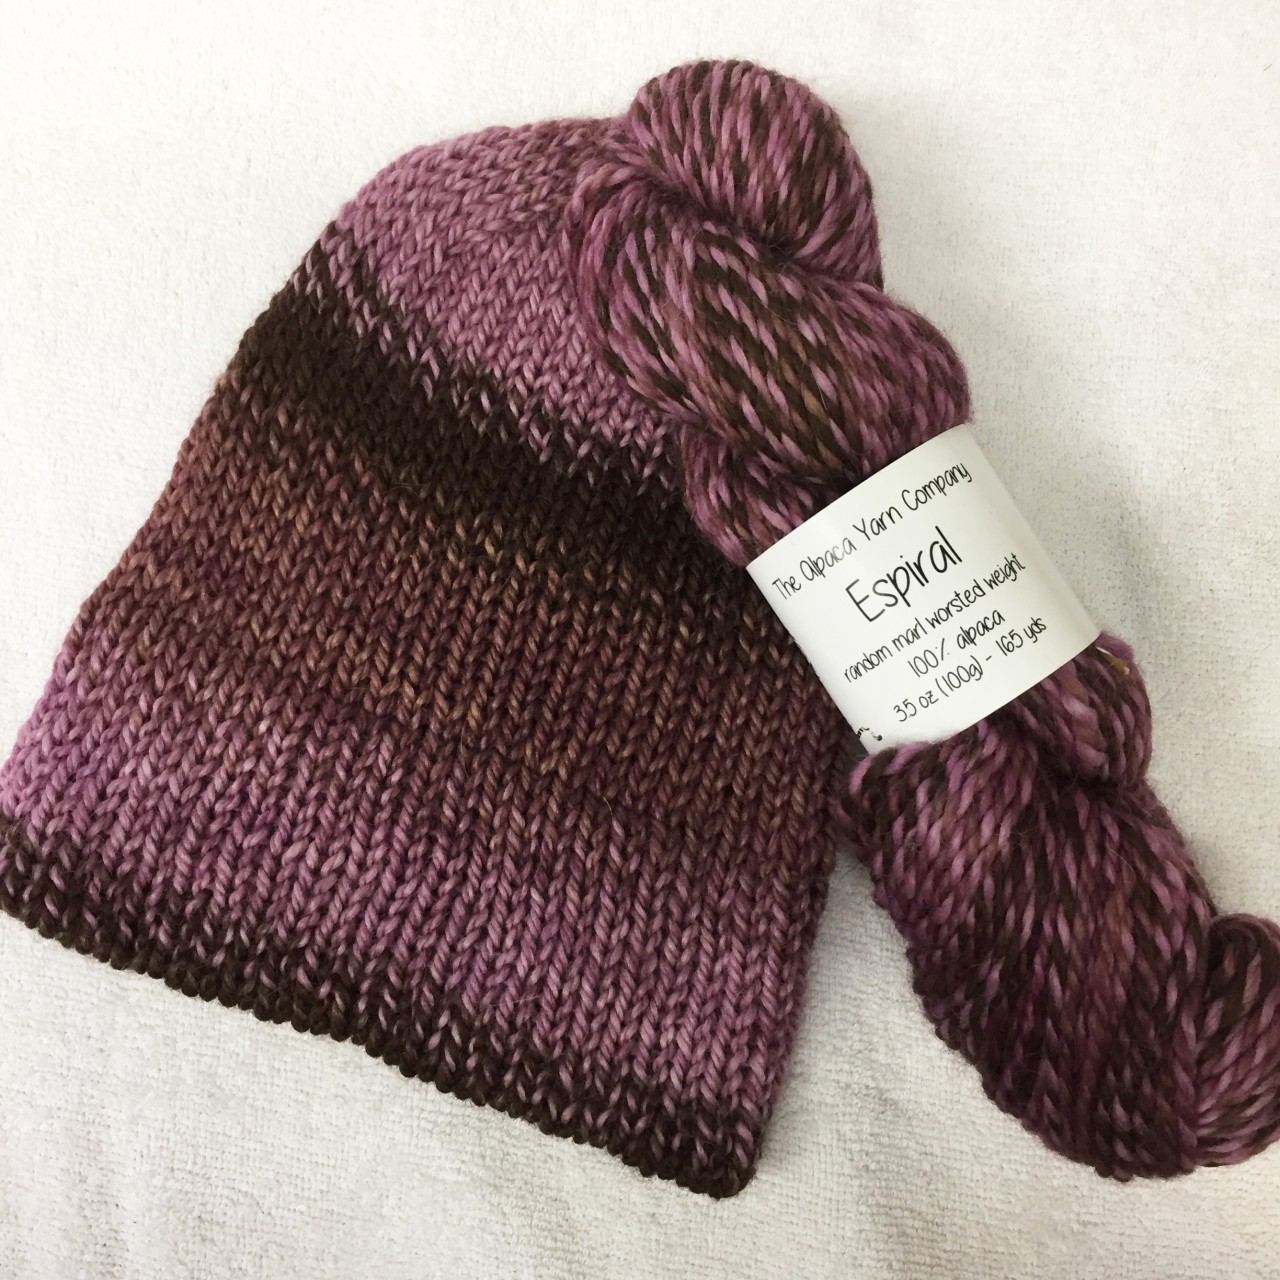 Espiral Alpaca Yarn - Plum Pudding